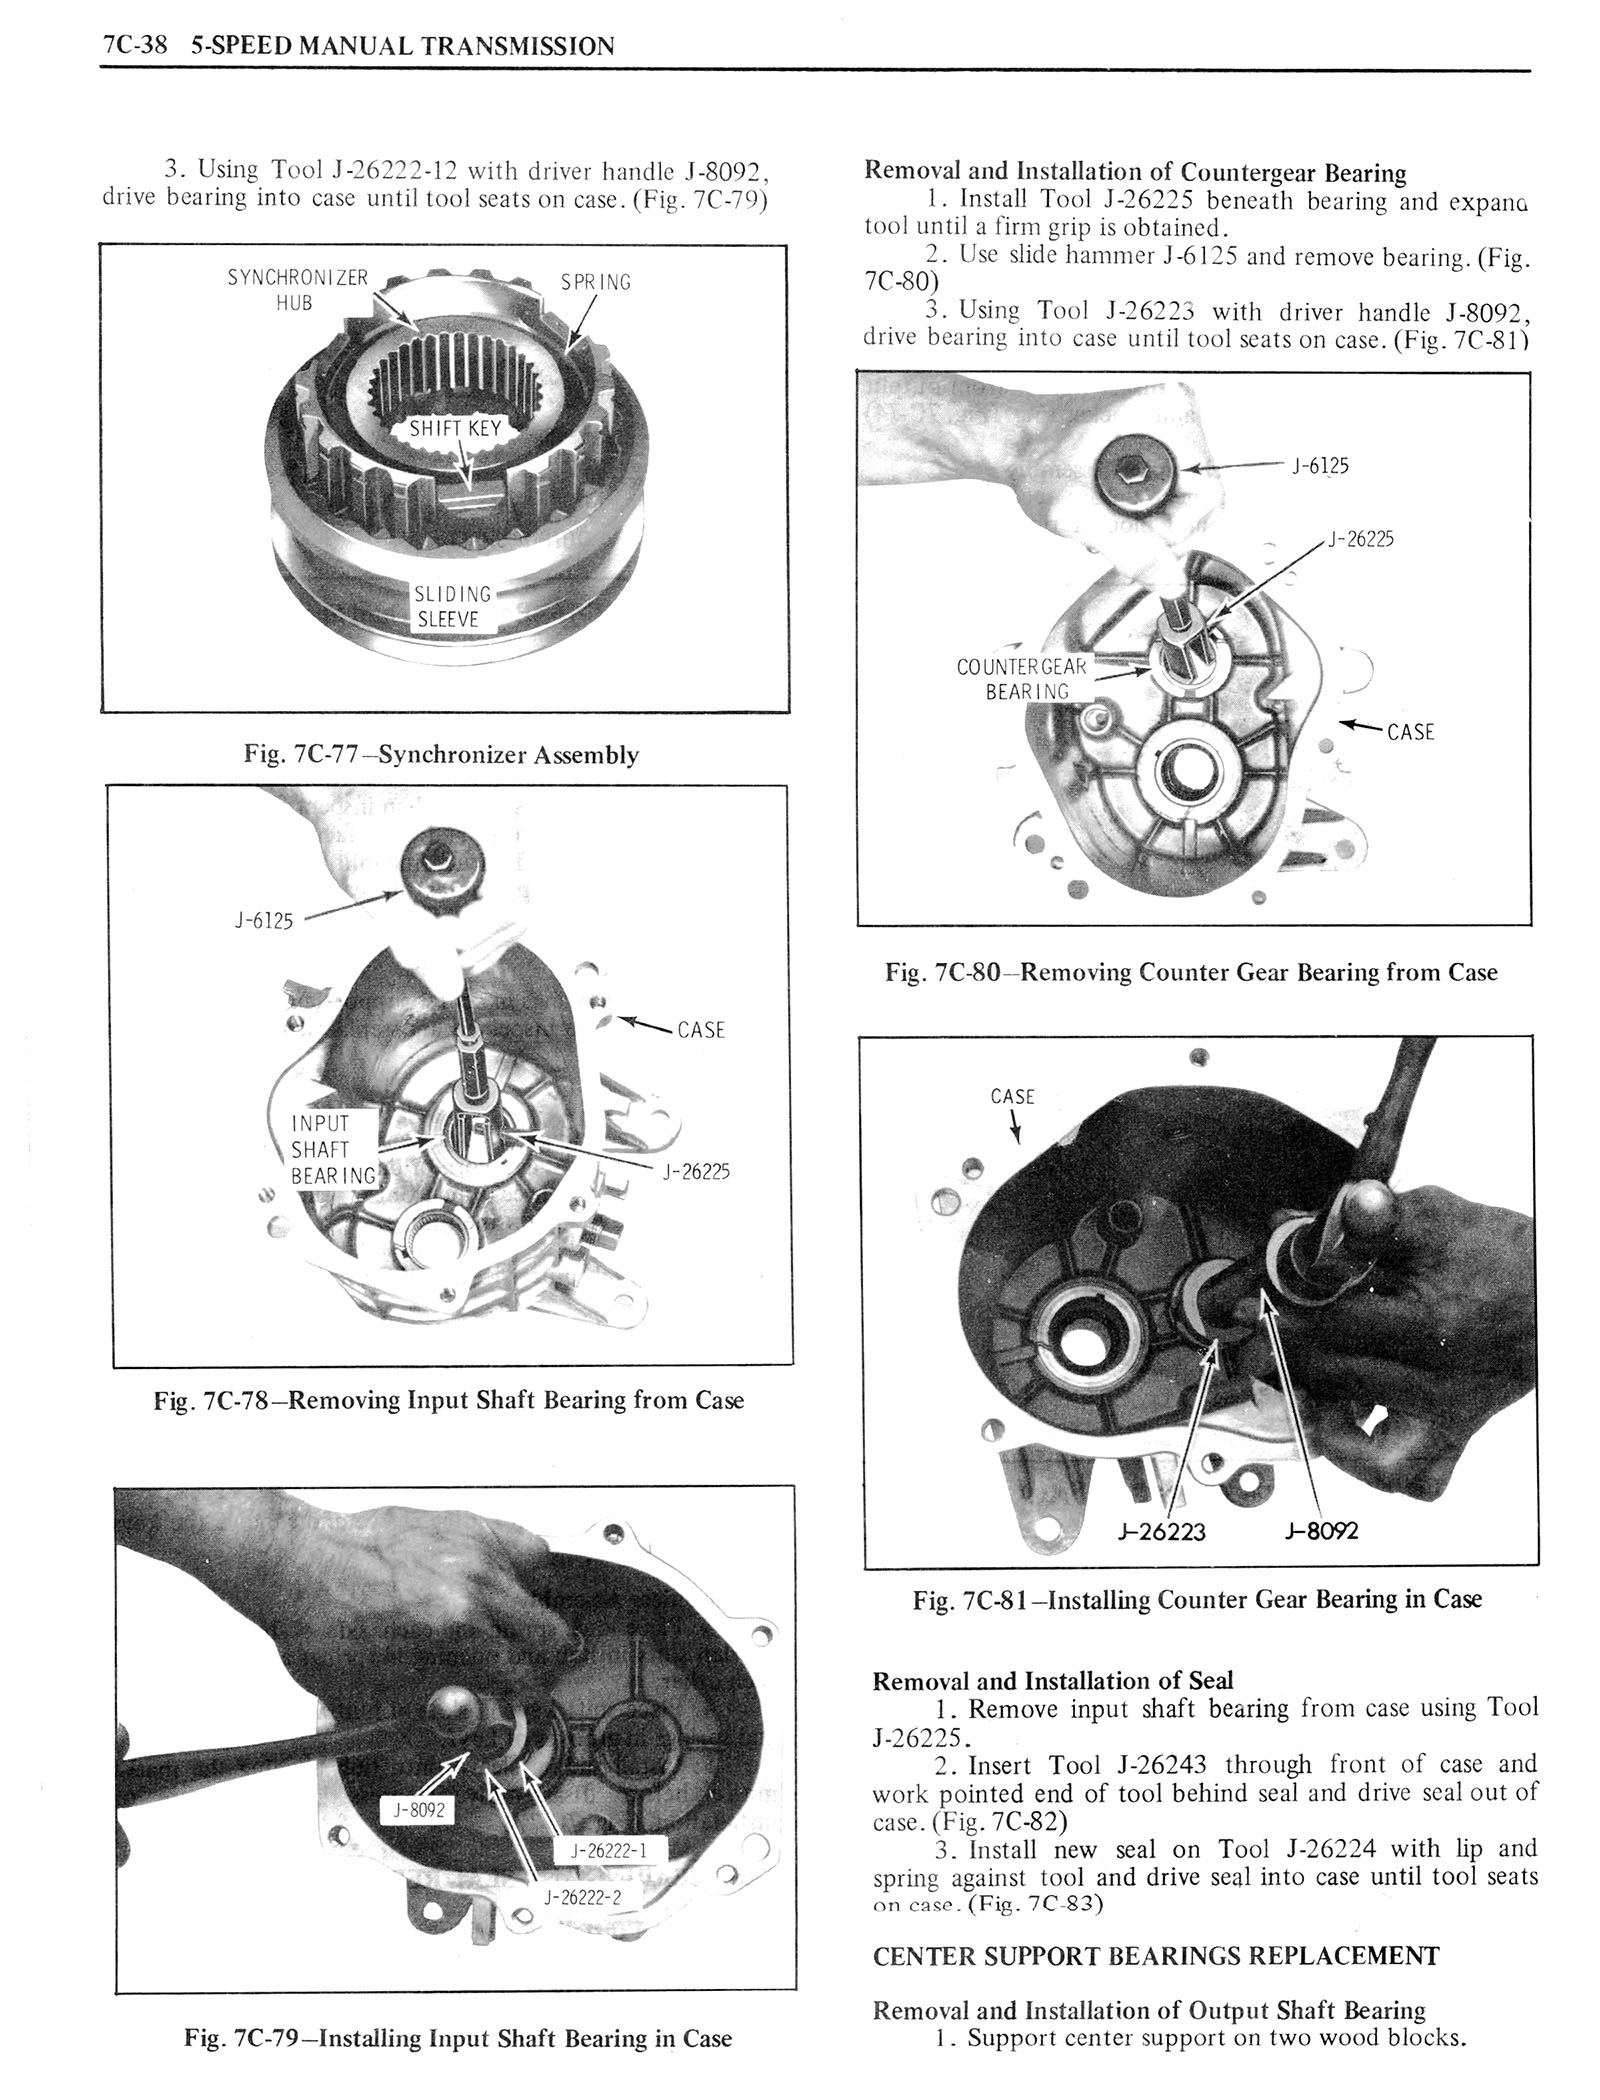 1976 Oldsmobile Service Manual page 910 of 1390